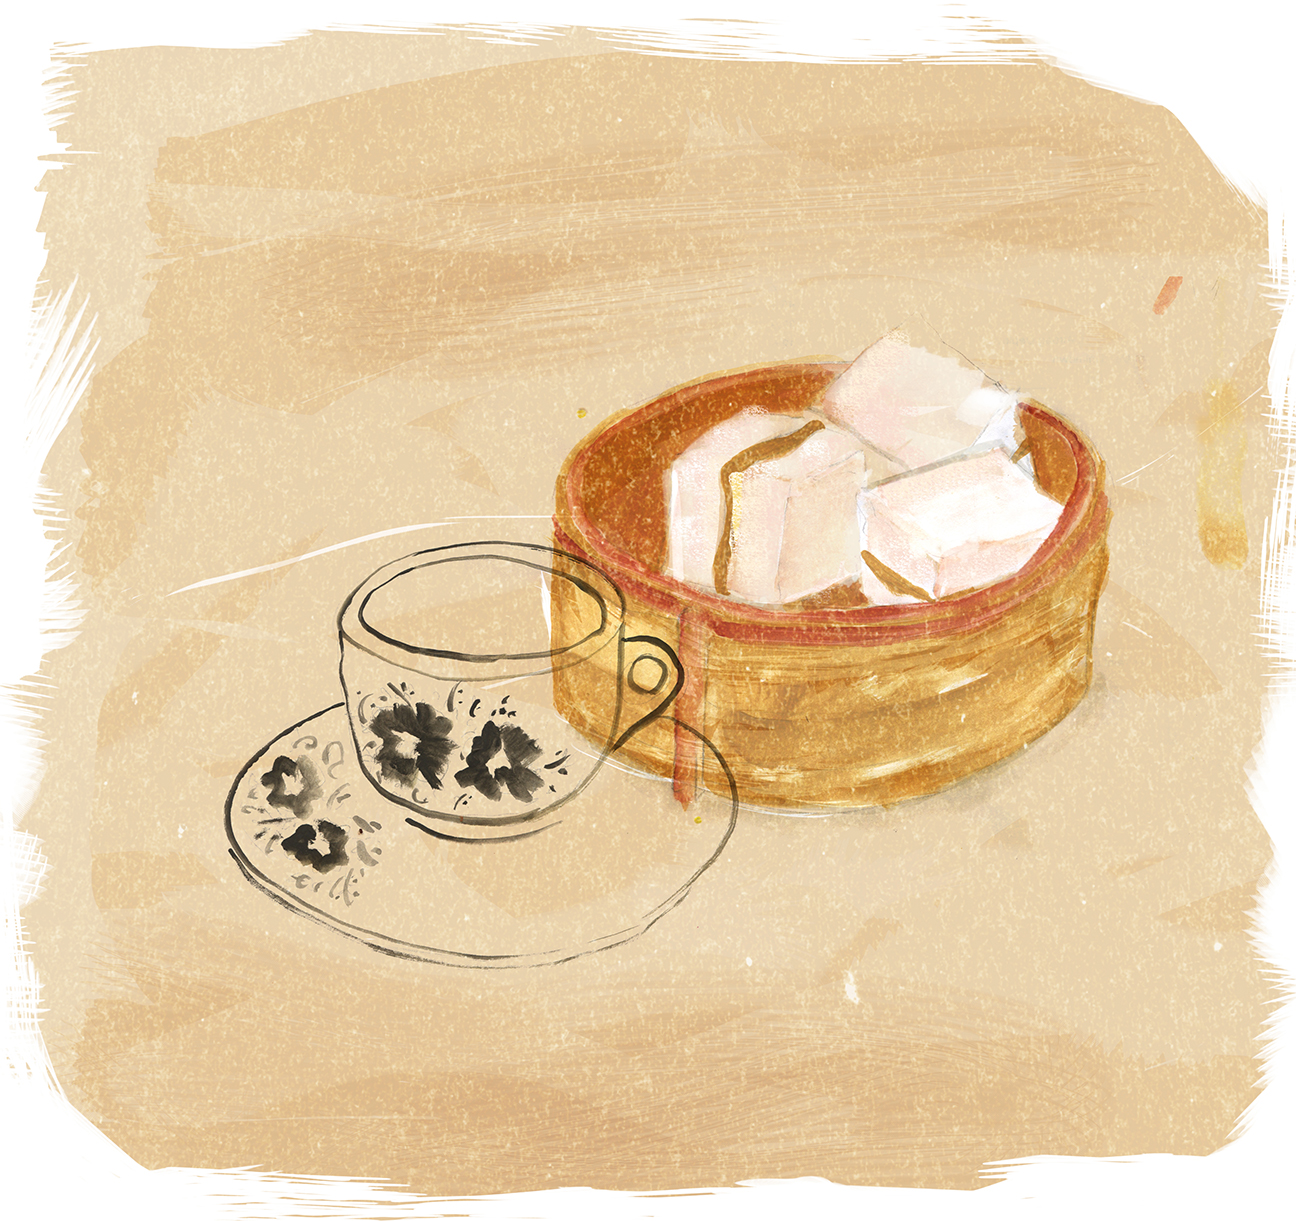 Steamed Challah with Kaya, Shabbat, JewAsian, Lauren Monaco Illustration